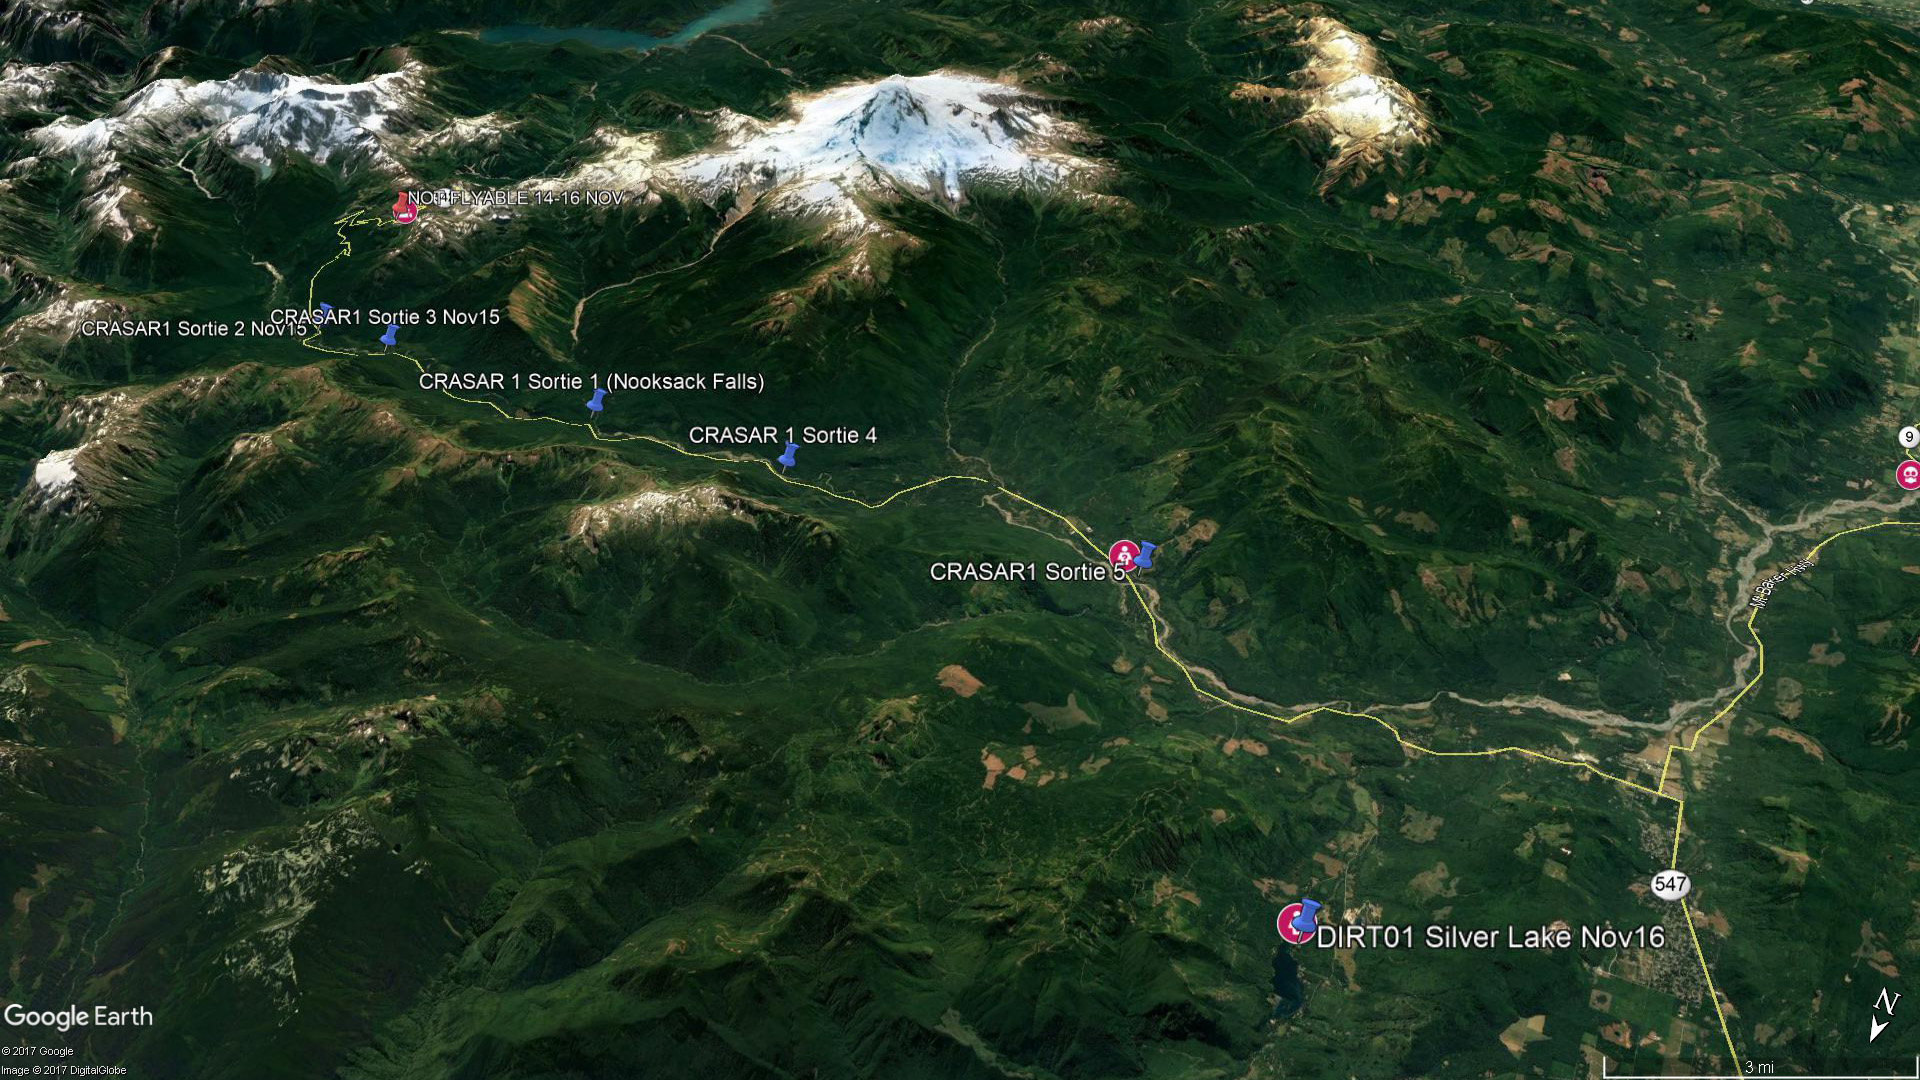 This Google Earth image serves as a location reference for panoramic photos taken in various locations near Mount Baker in Whatcom County. Mount Baker is the dominant peak at the top of the map, the tallest mountain in the North Cascade range.